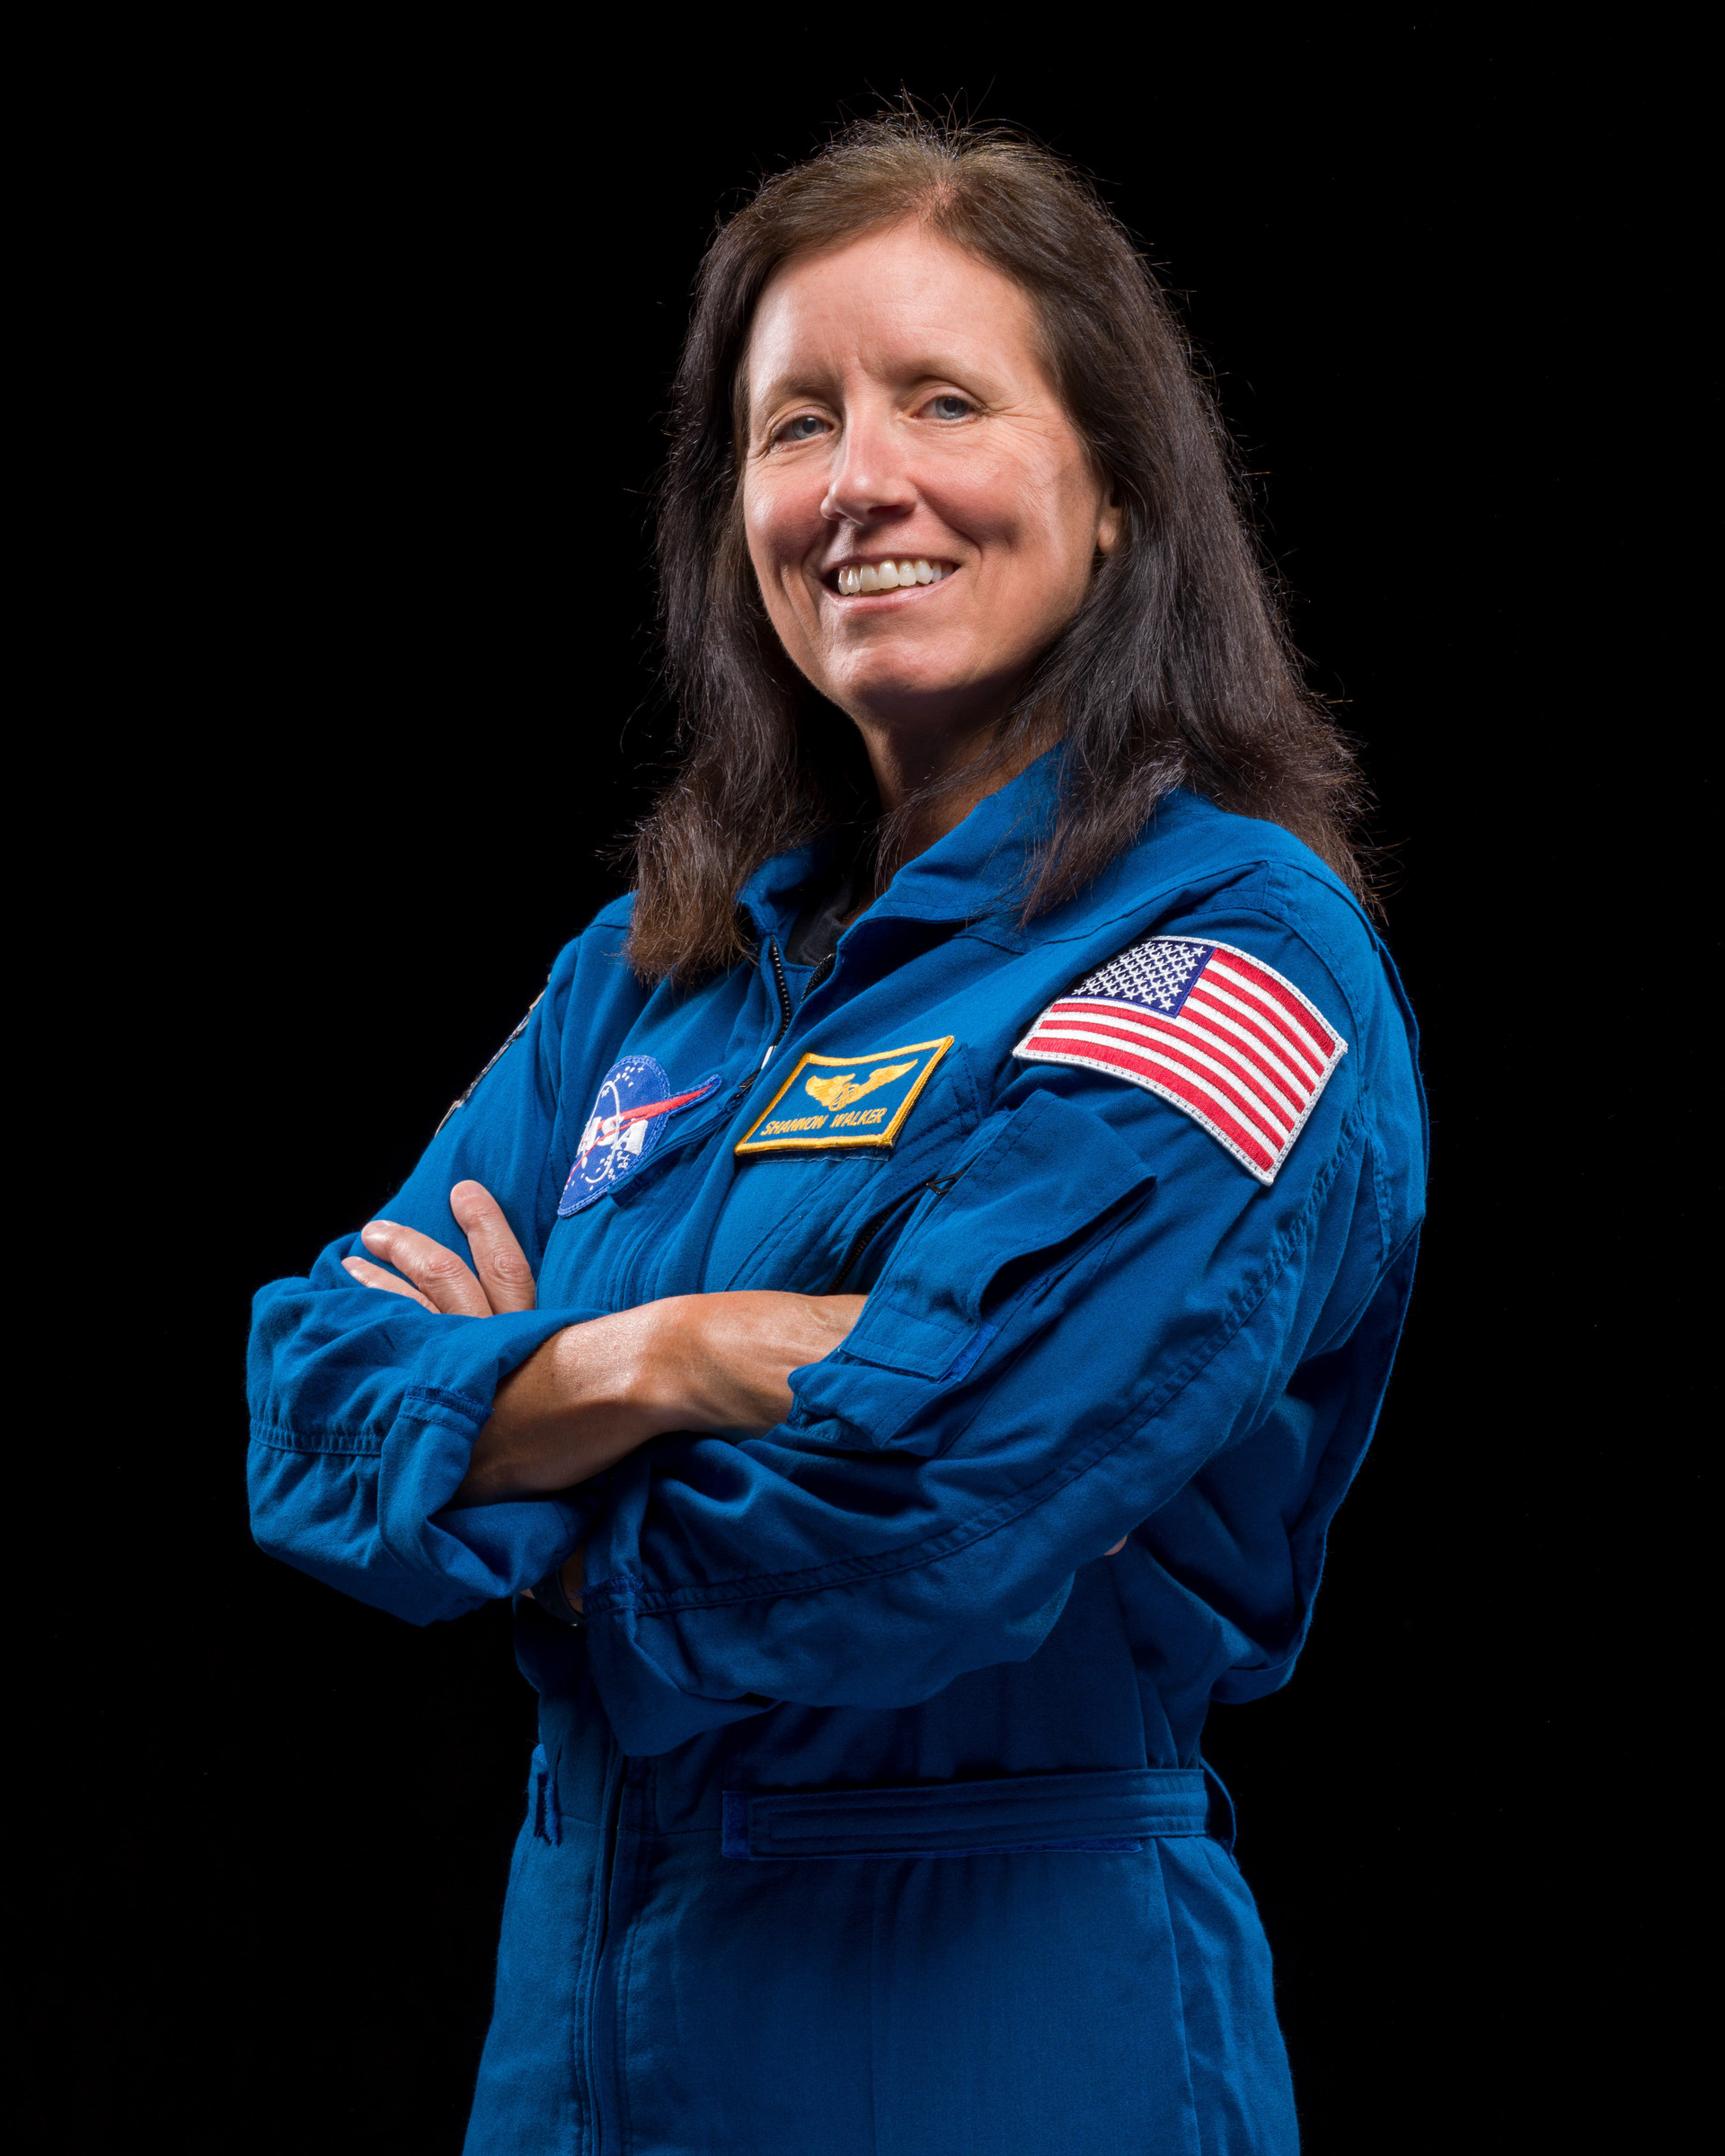 NASA astronaut and SpaceX Crew-1 Mission Specialist Shannon Walker will also be a Flight Engineer for Expedition 64.